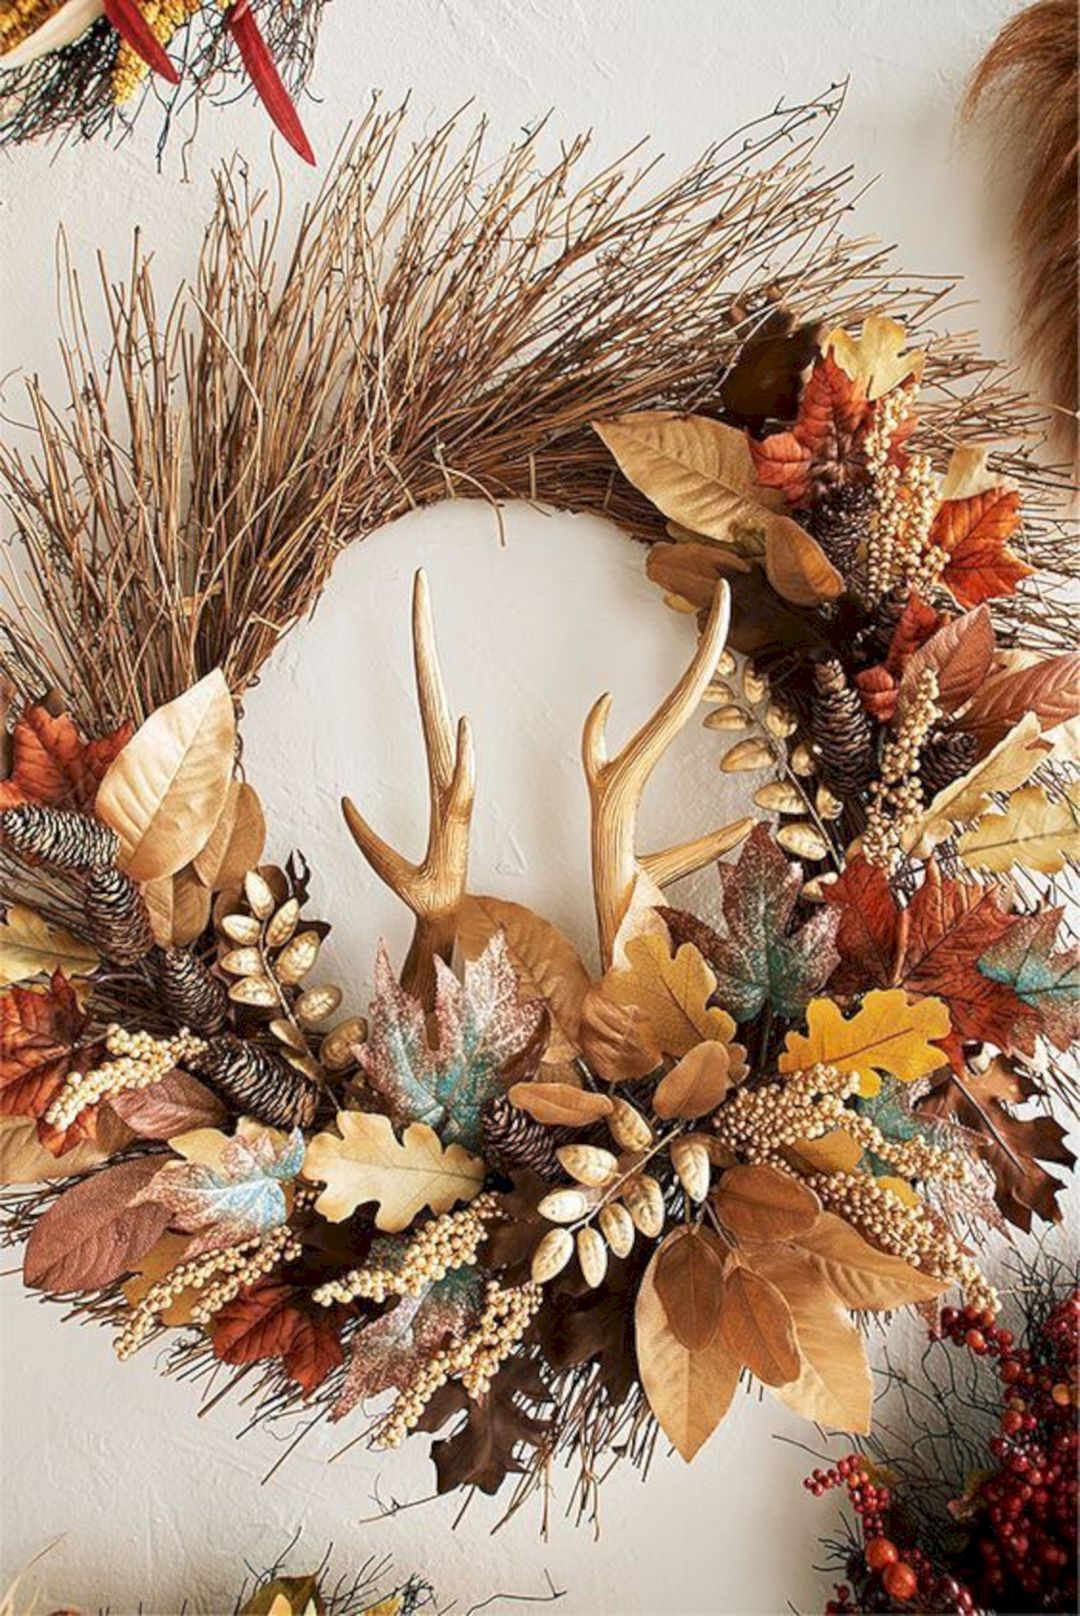 Best Ideas To Create Fall Wreaths Diy 115 Handy Inspirations 0632 #fallwreaths